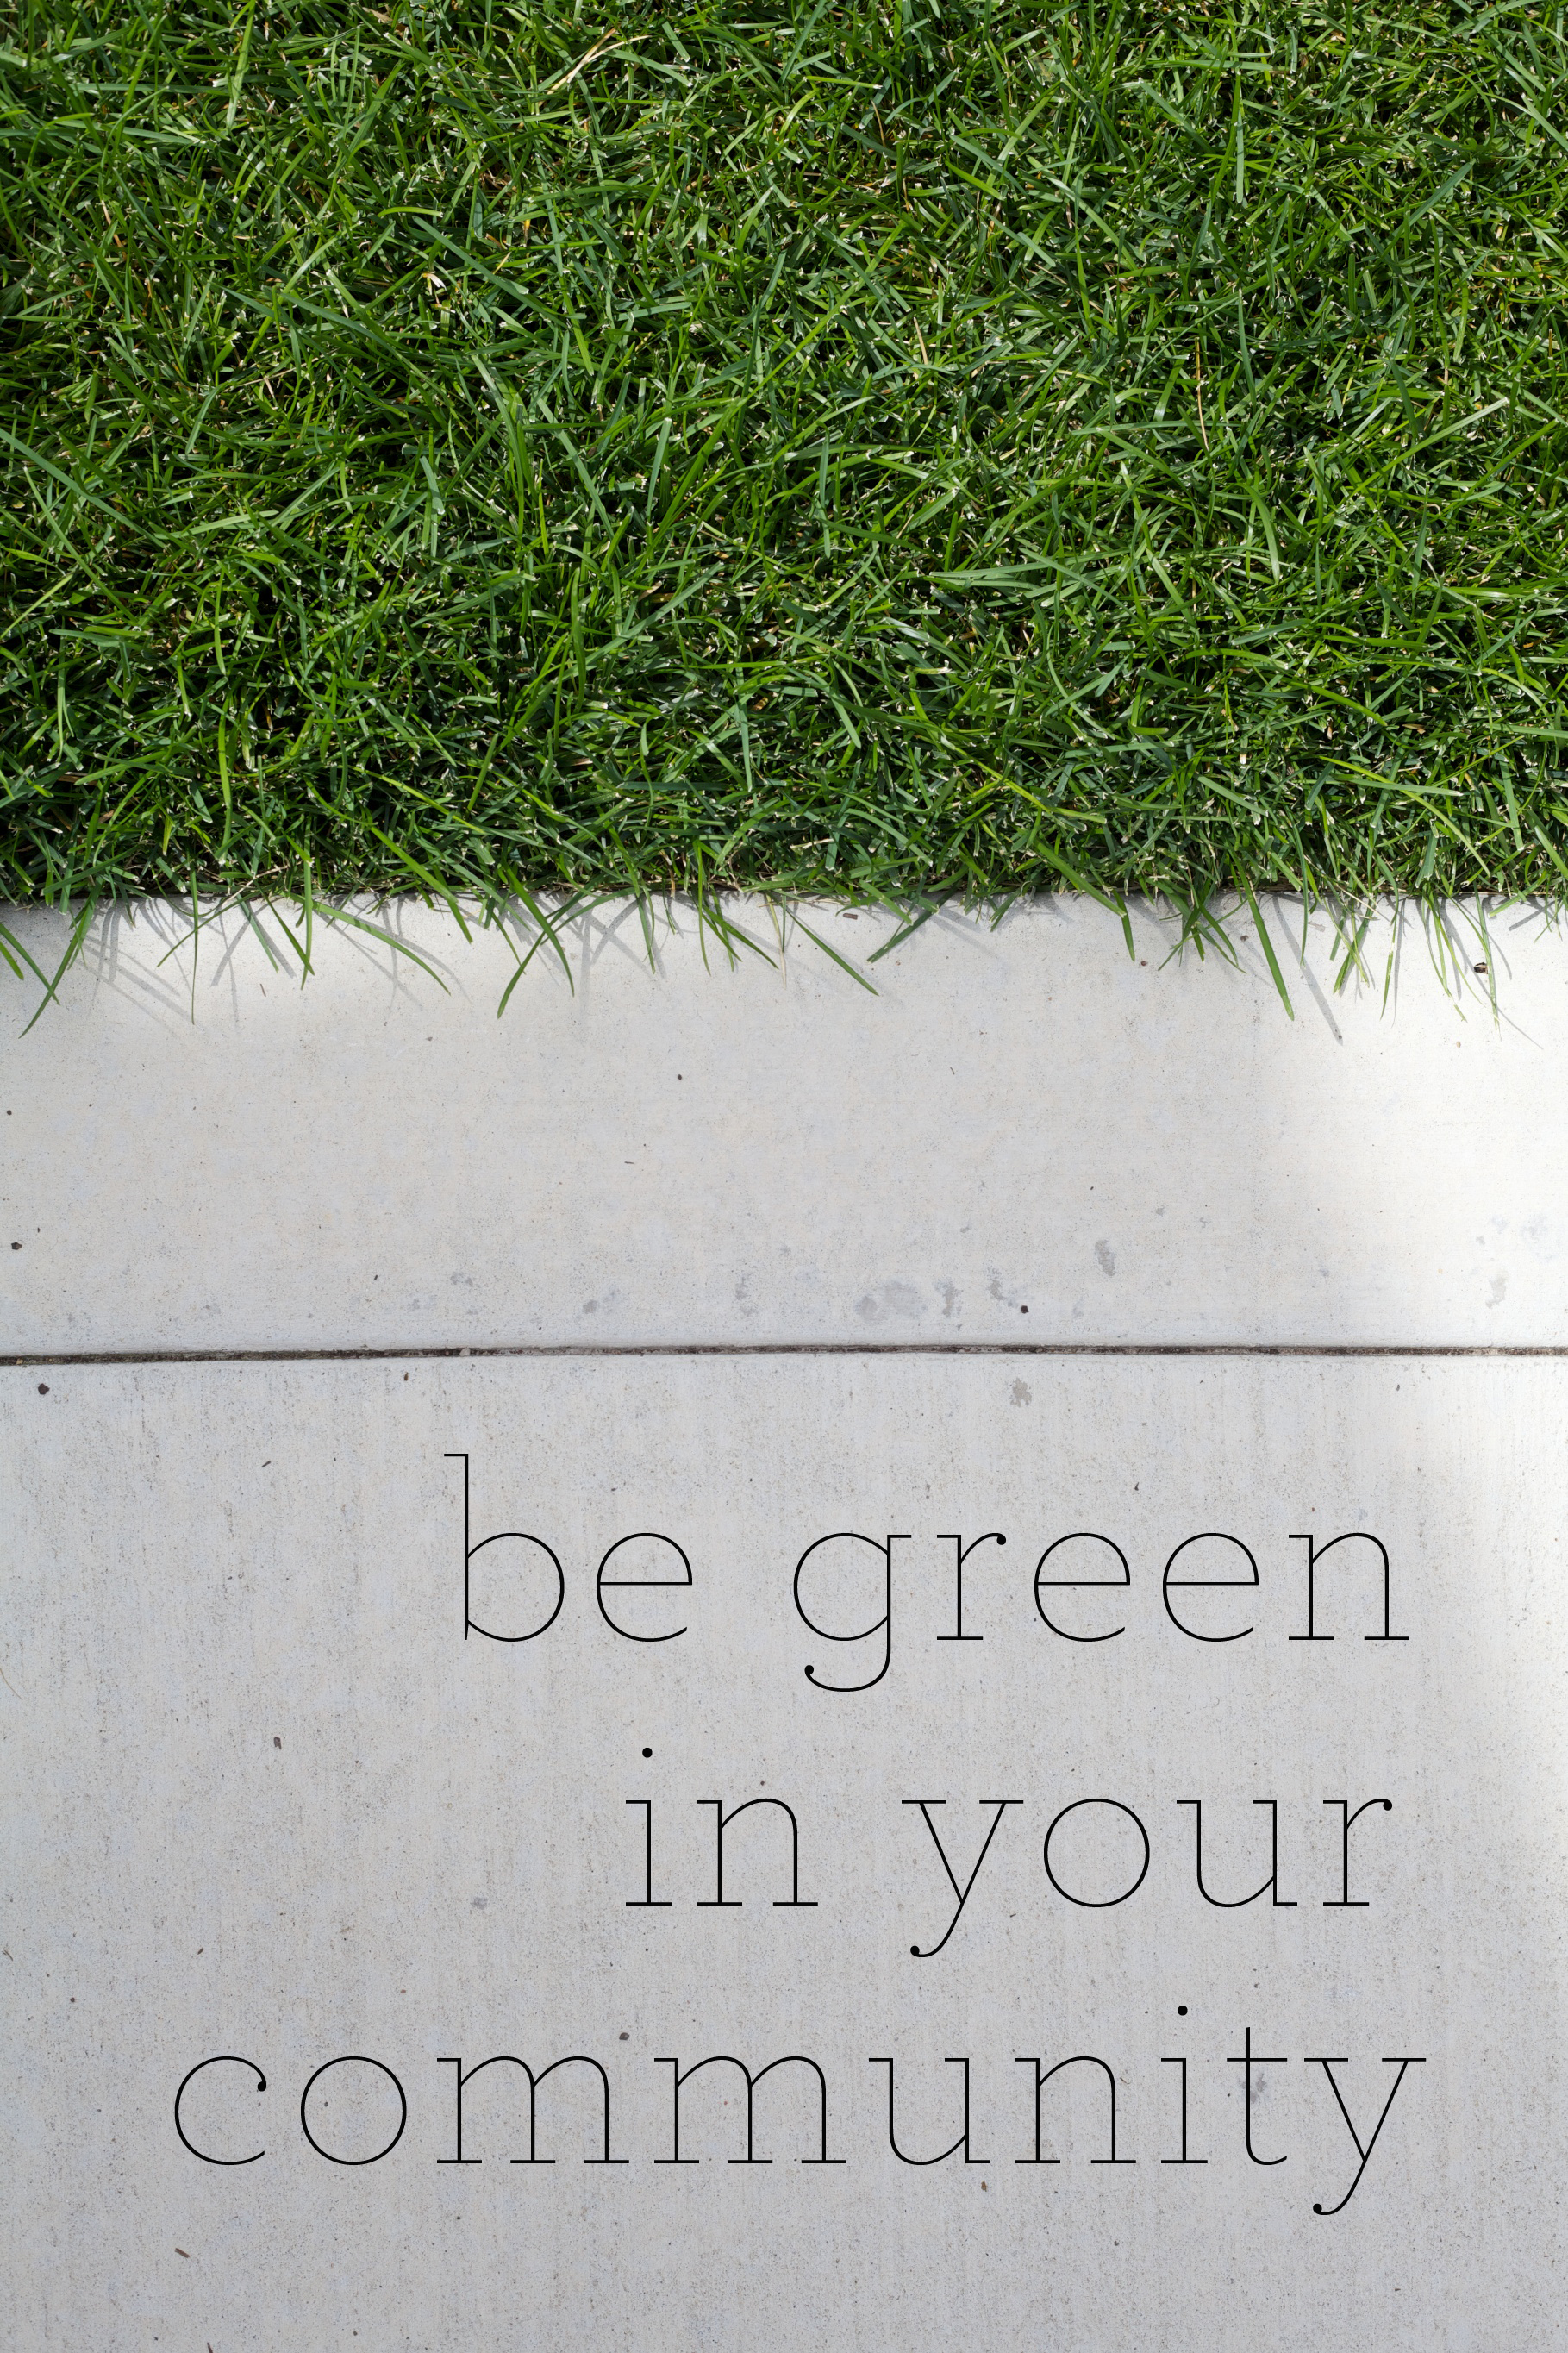 everyone can live green!